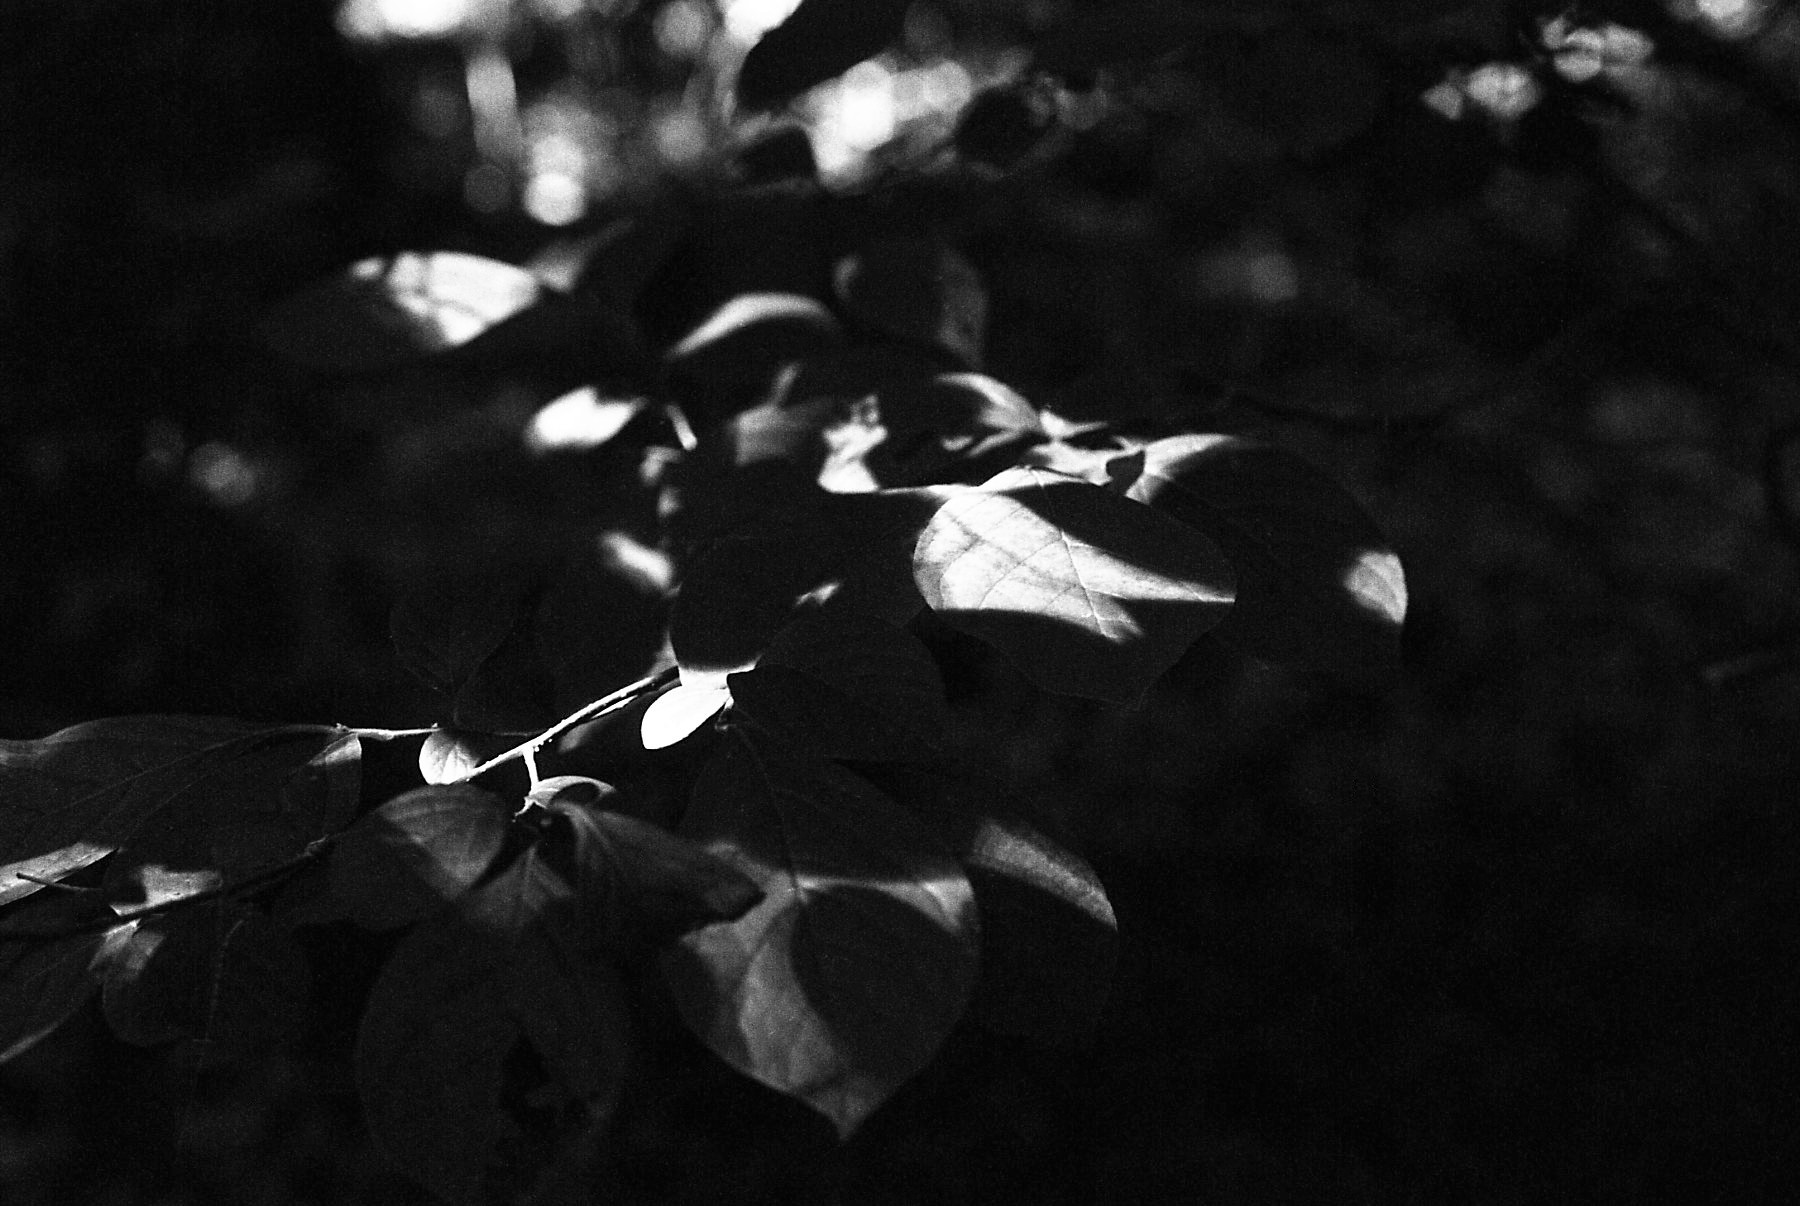 black and white dappled light on leaves